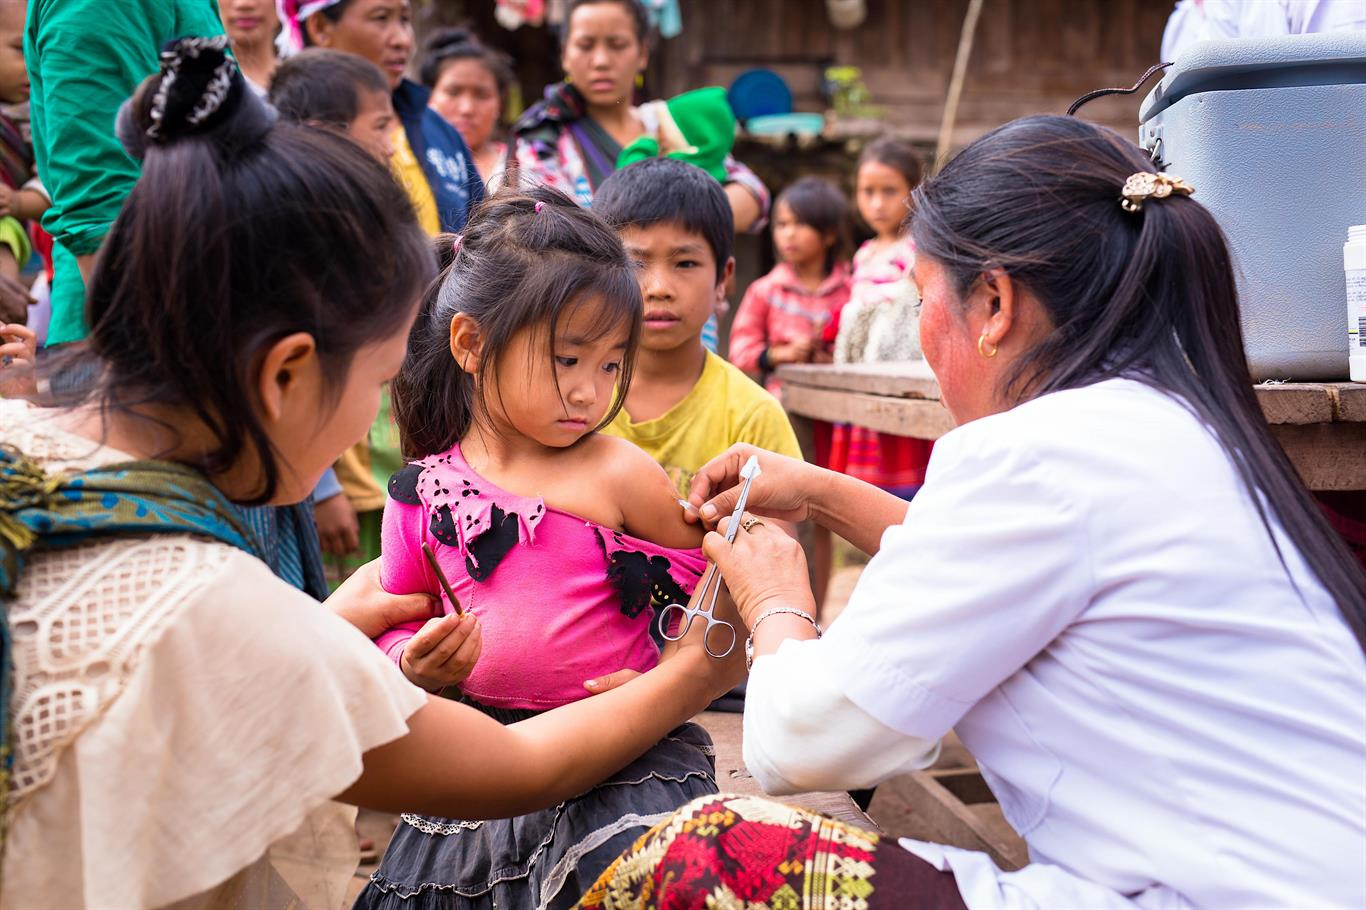 A girl gets vaccinated against measles.